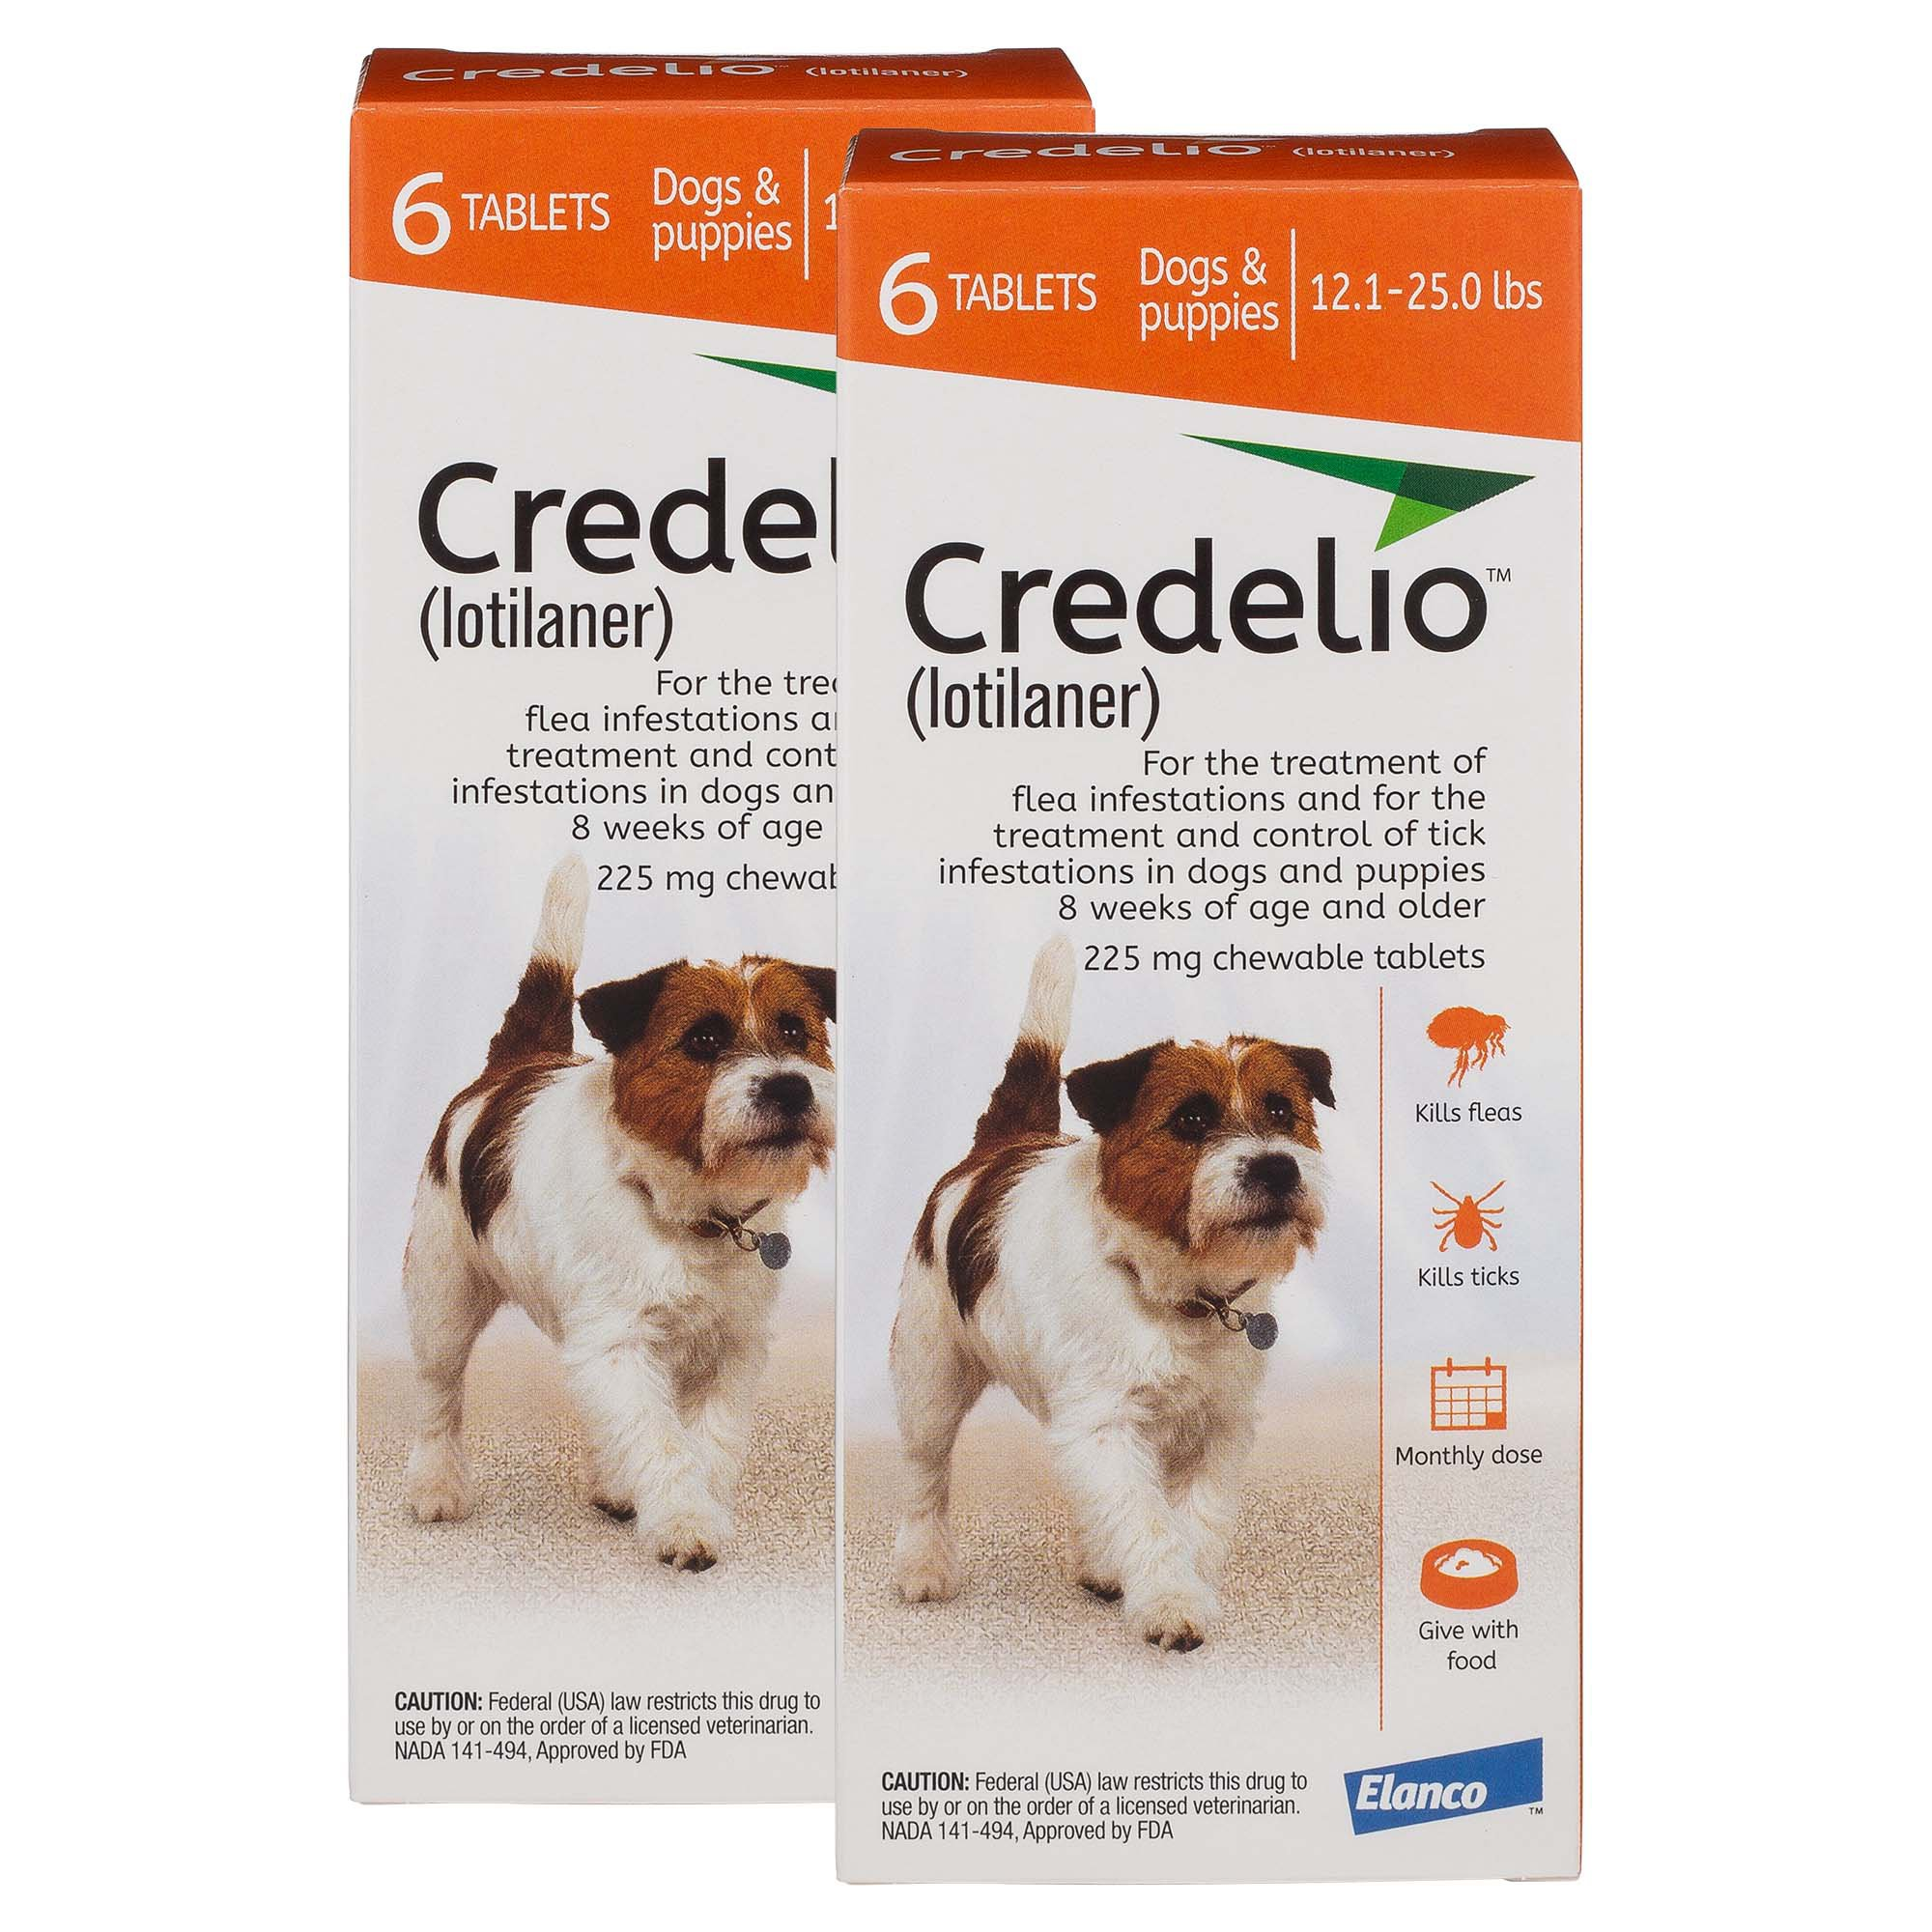 Credelio Chewable Tablets for Dogs 12 1-25 lbs  - Orange, 6 Pack | Petco